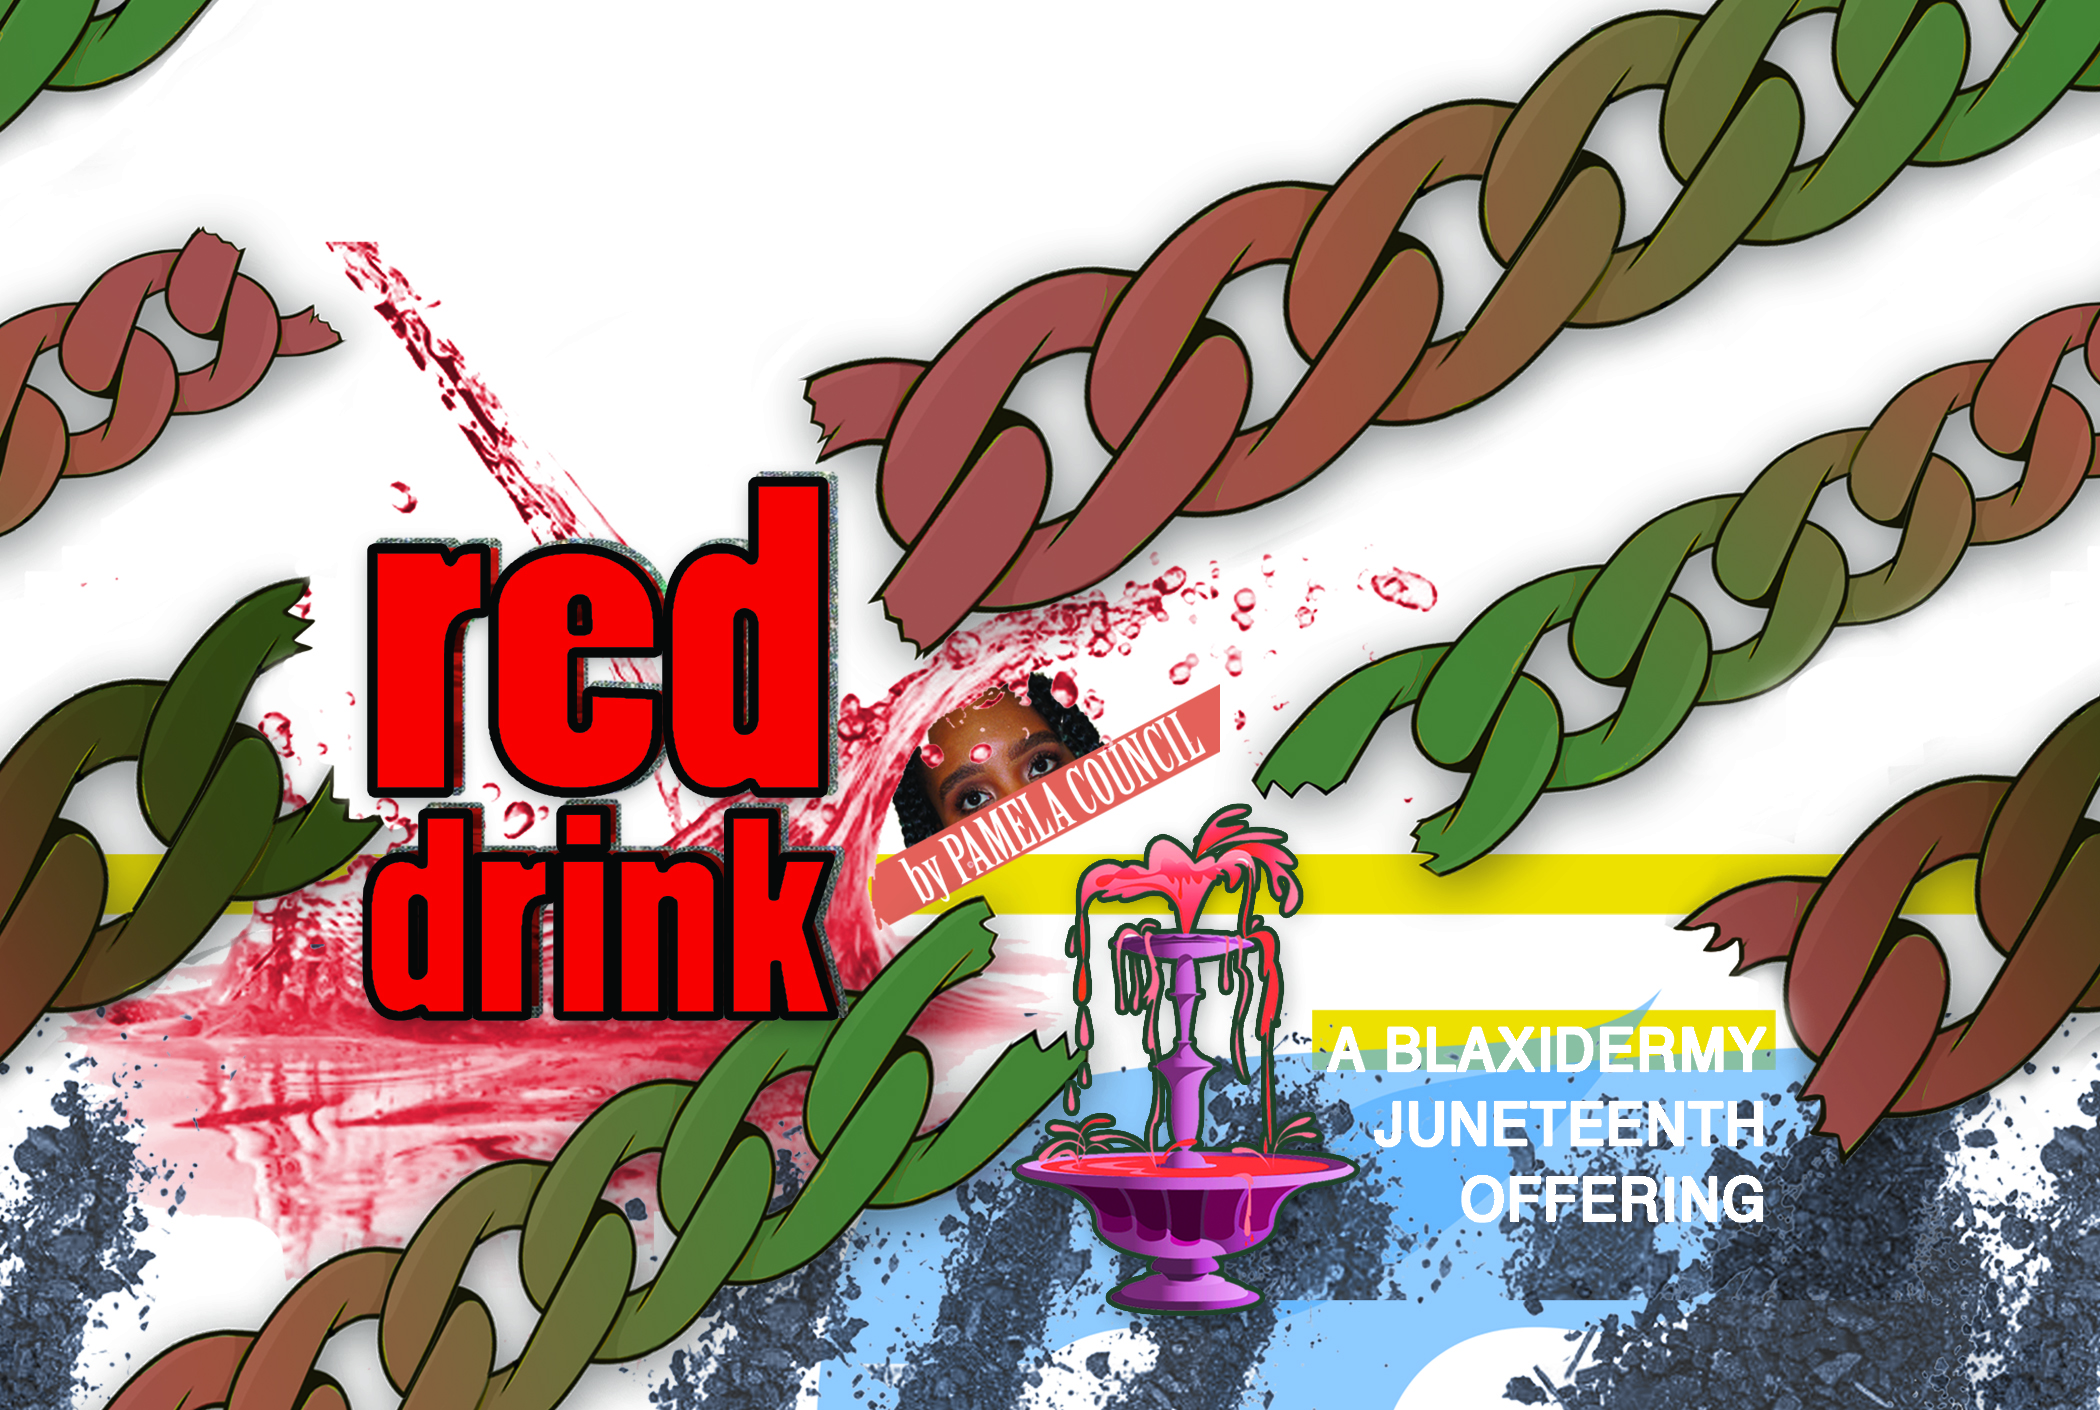 NEXT UP: Red Drink: A BLAXIDERMY Juneteenth Offering Miller Theatre Houston, Texas June 19, 4pm - a fountain for the holidayclick here for a link to the Facebook eventclick here for HMAAC Press Release